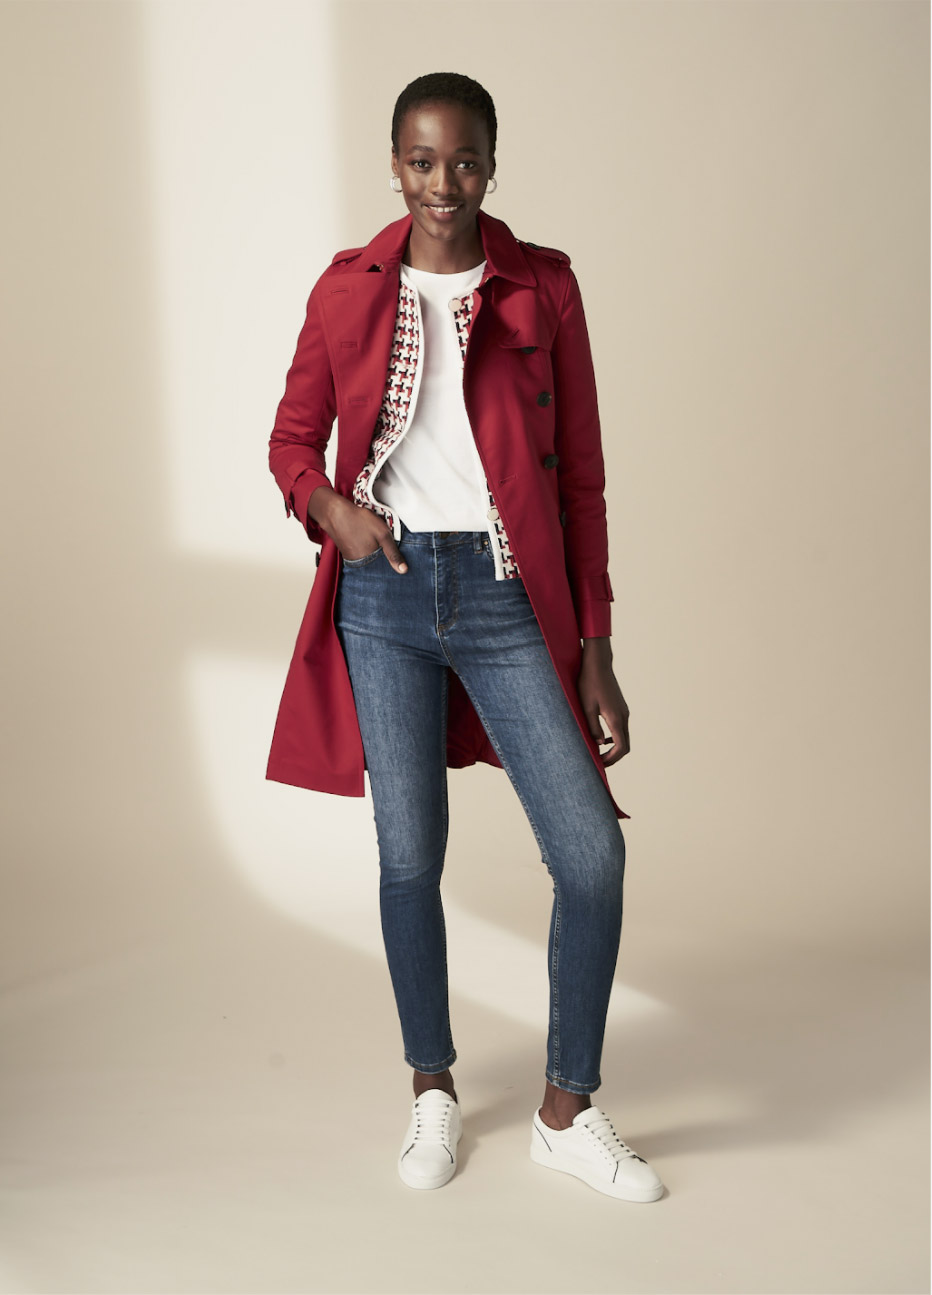 Hobbs model wearing a red trench coat over a dogtooth patterned jacket with a white t-shirt underneath, styled with blue jeans and white trainers.